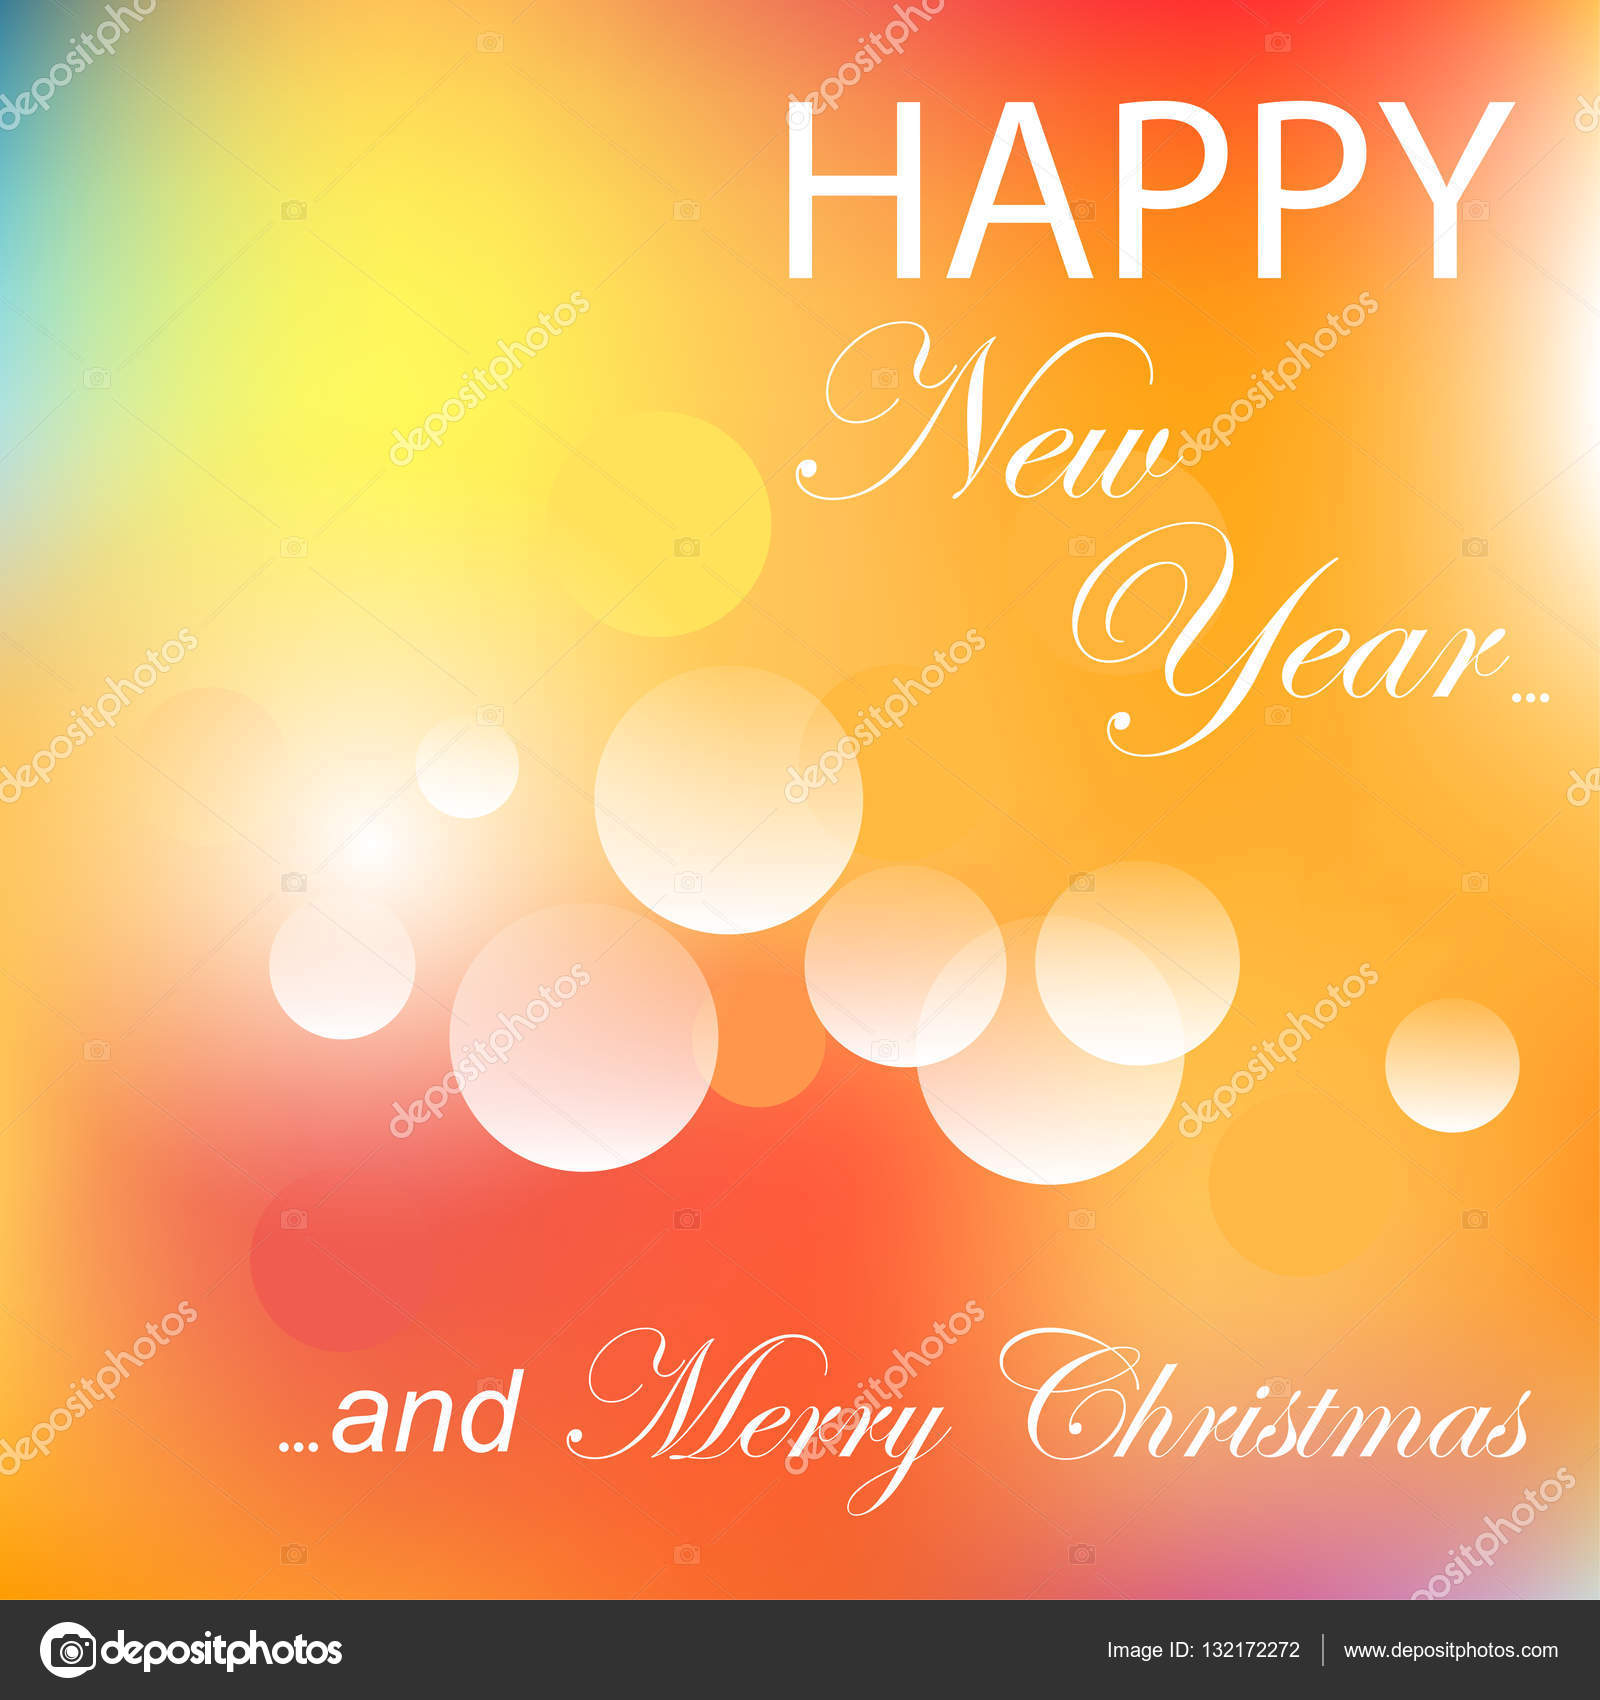 happy new year 2017 vector background year for your artwork homepage or website 2017 new